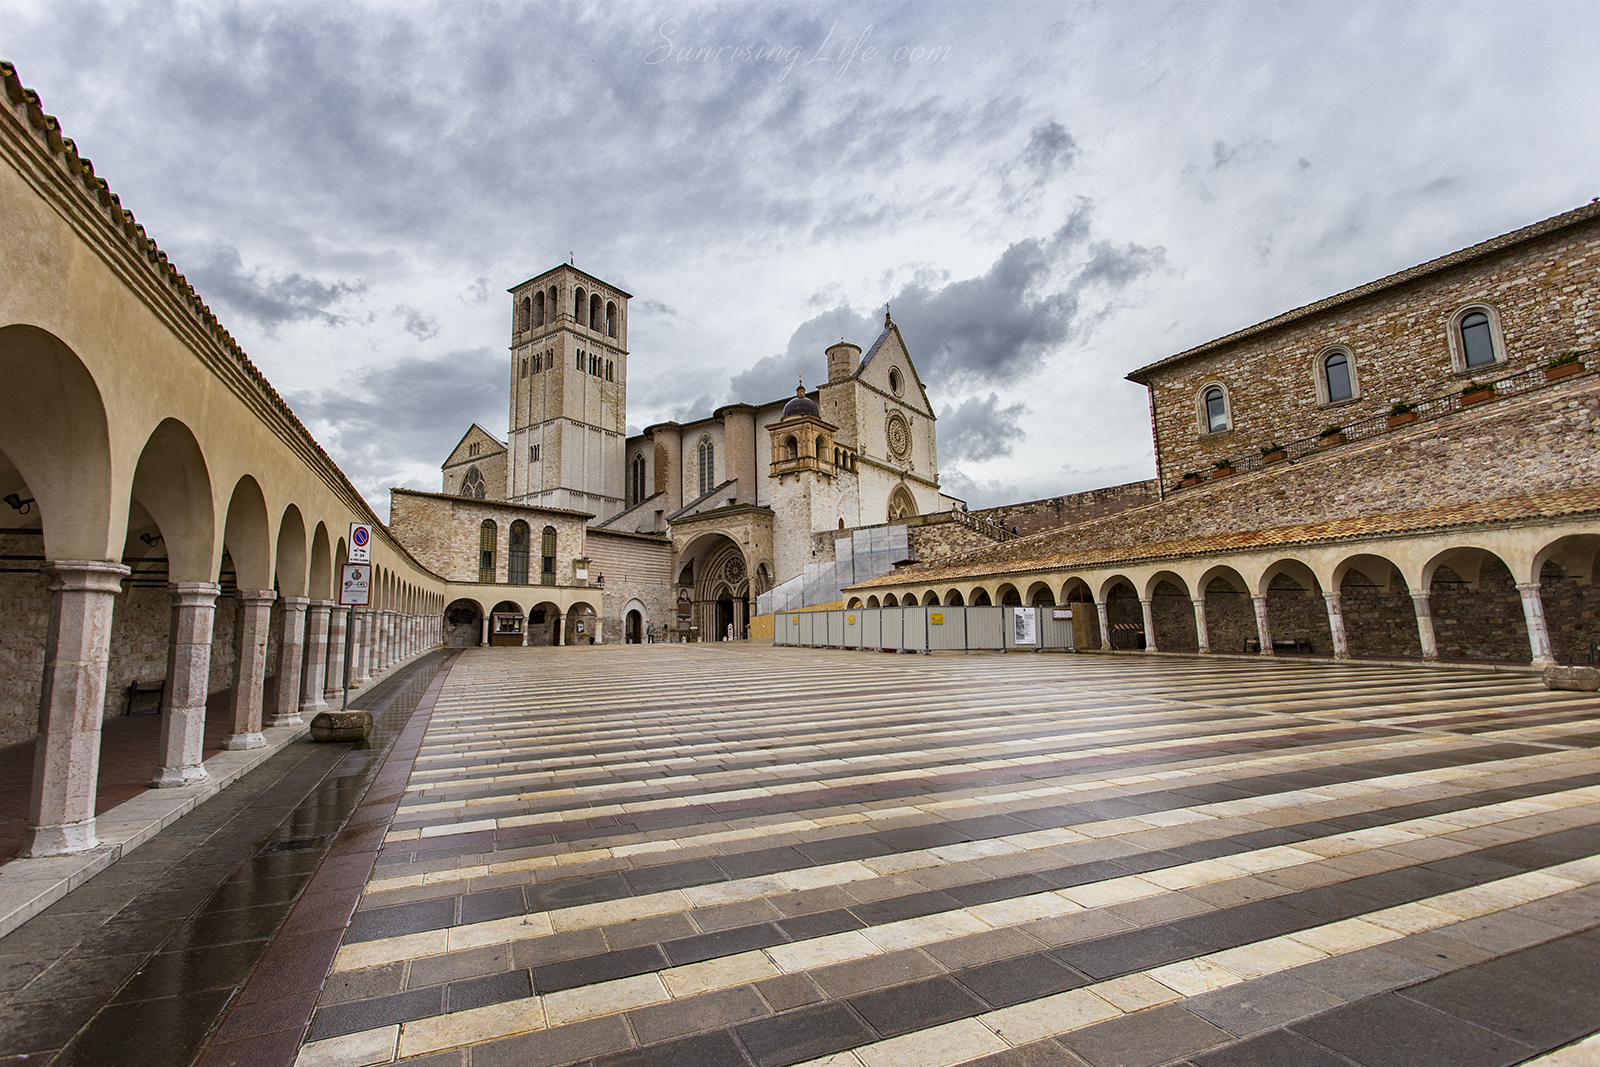 Basilica San Francesco in Assisi